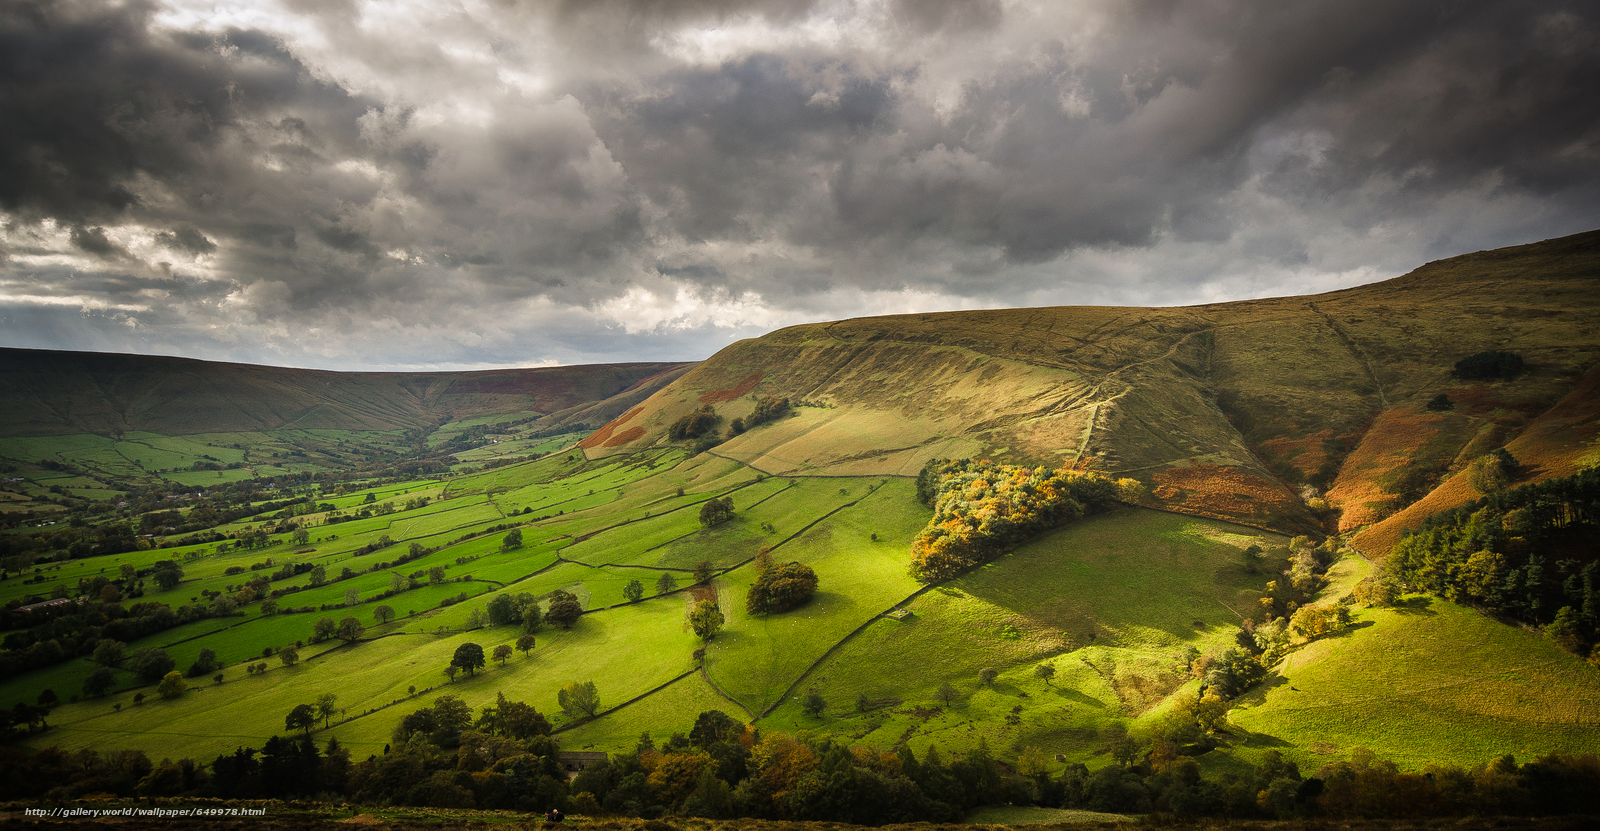 Hathersage United Kingdom  city pictures gallery : Download wallpaper valley, Hathersage, United Kingdom, England free ...